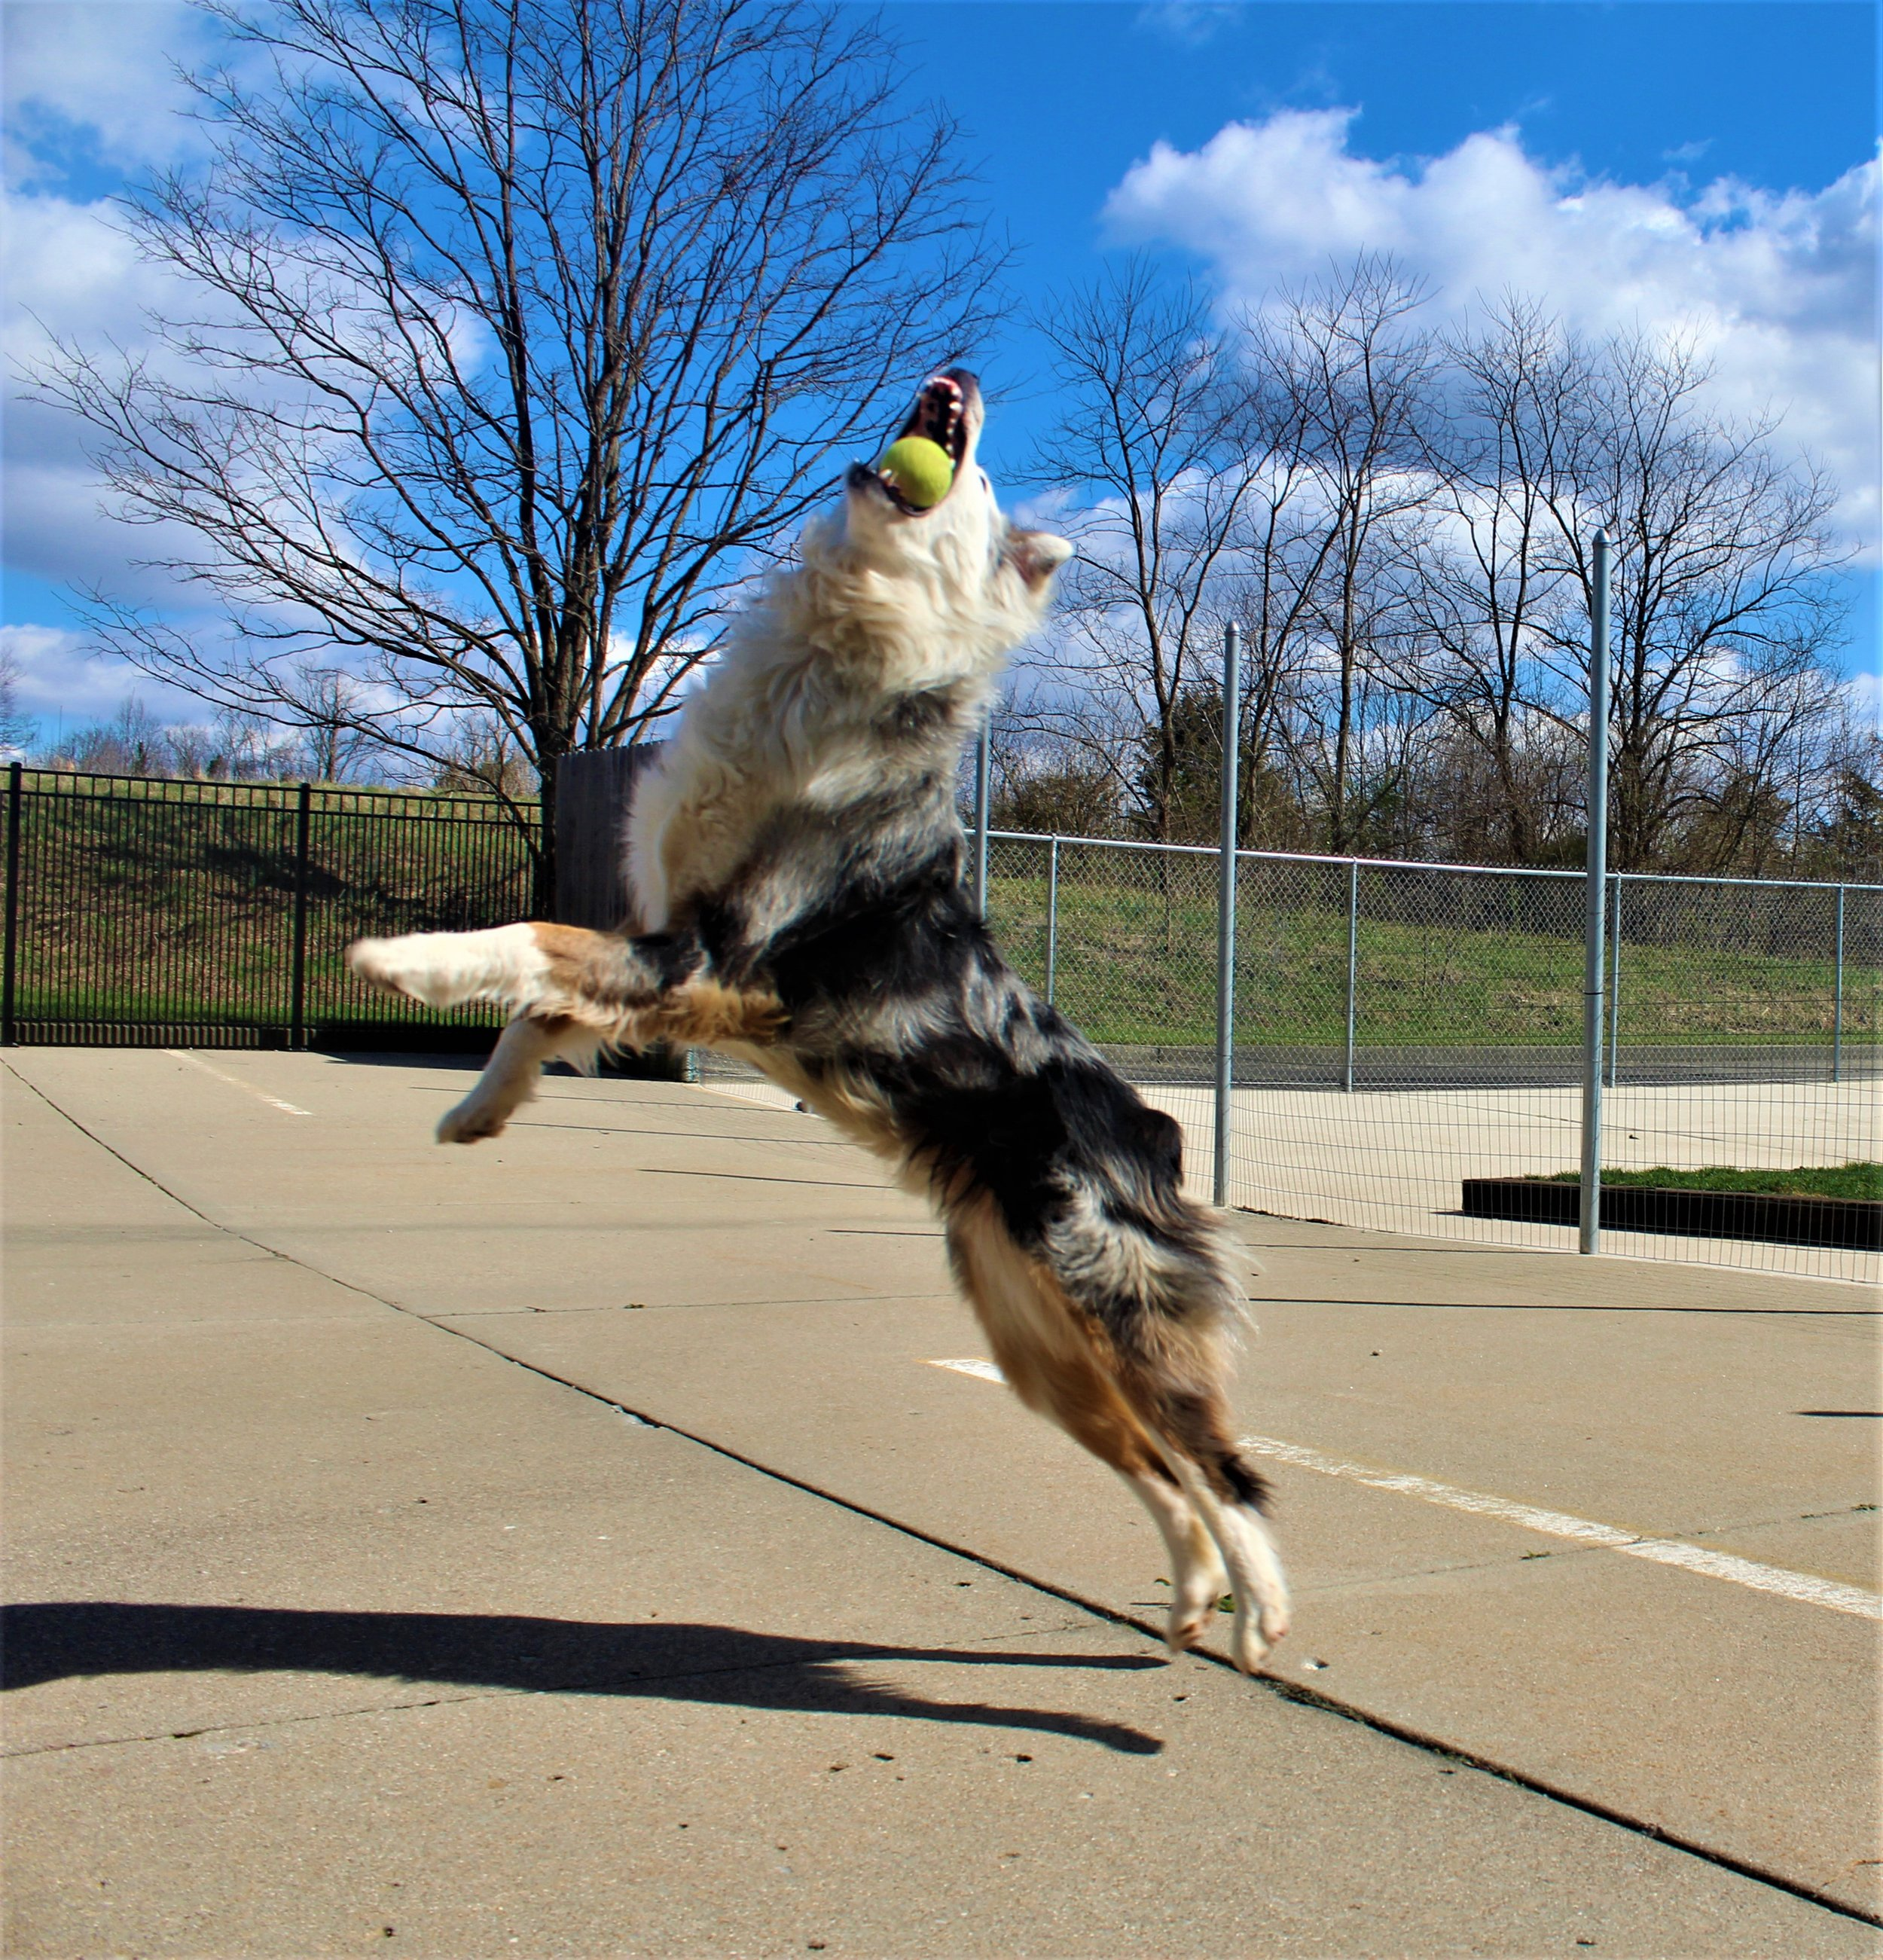 Arnie is quite possibly the best dog athlete that's ever come through here. This dog could catch a tennis ball straight out of the air. This picture is the the very essence of his abilities. Like a football wide receiver catching a ball inbounds many of the other daycare dog cheered wildly!